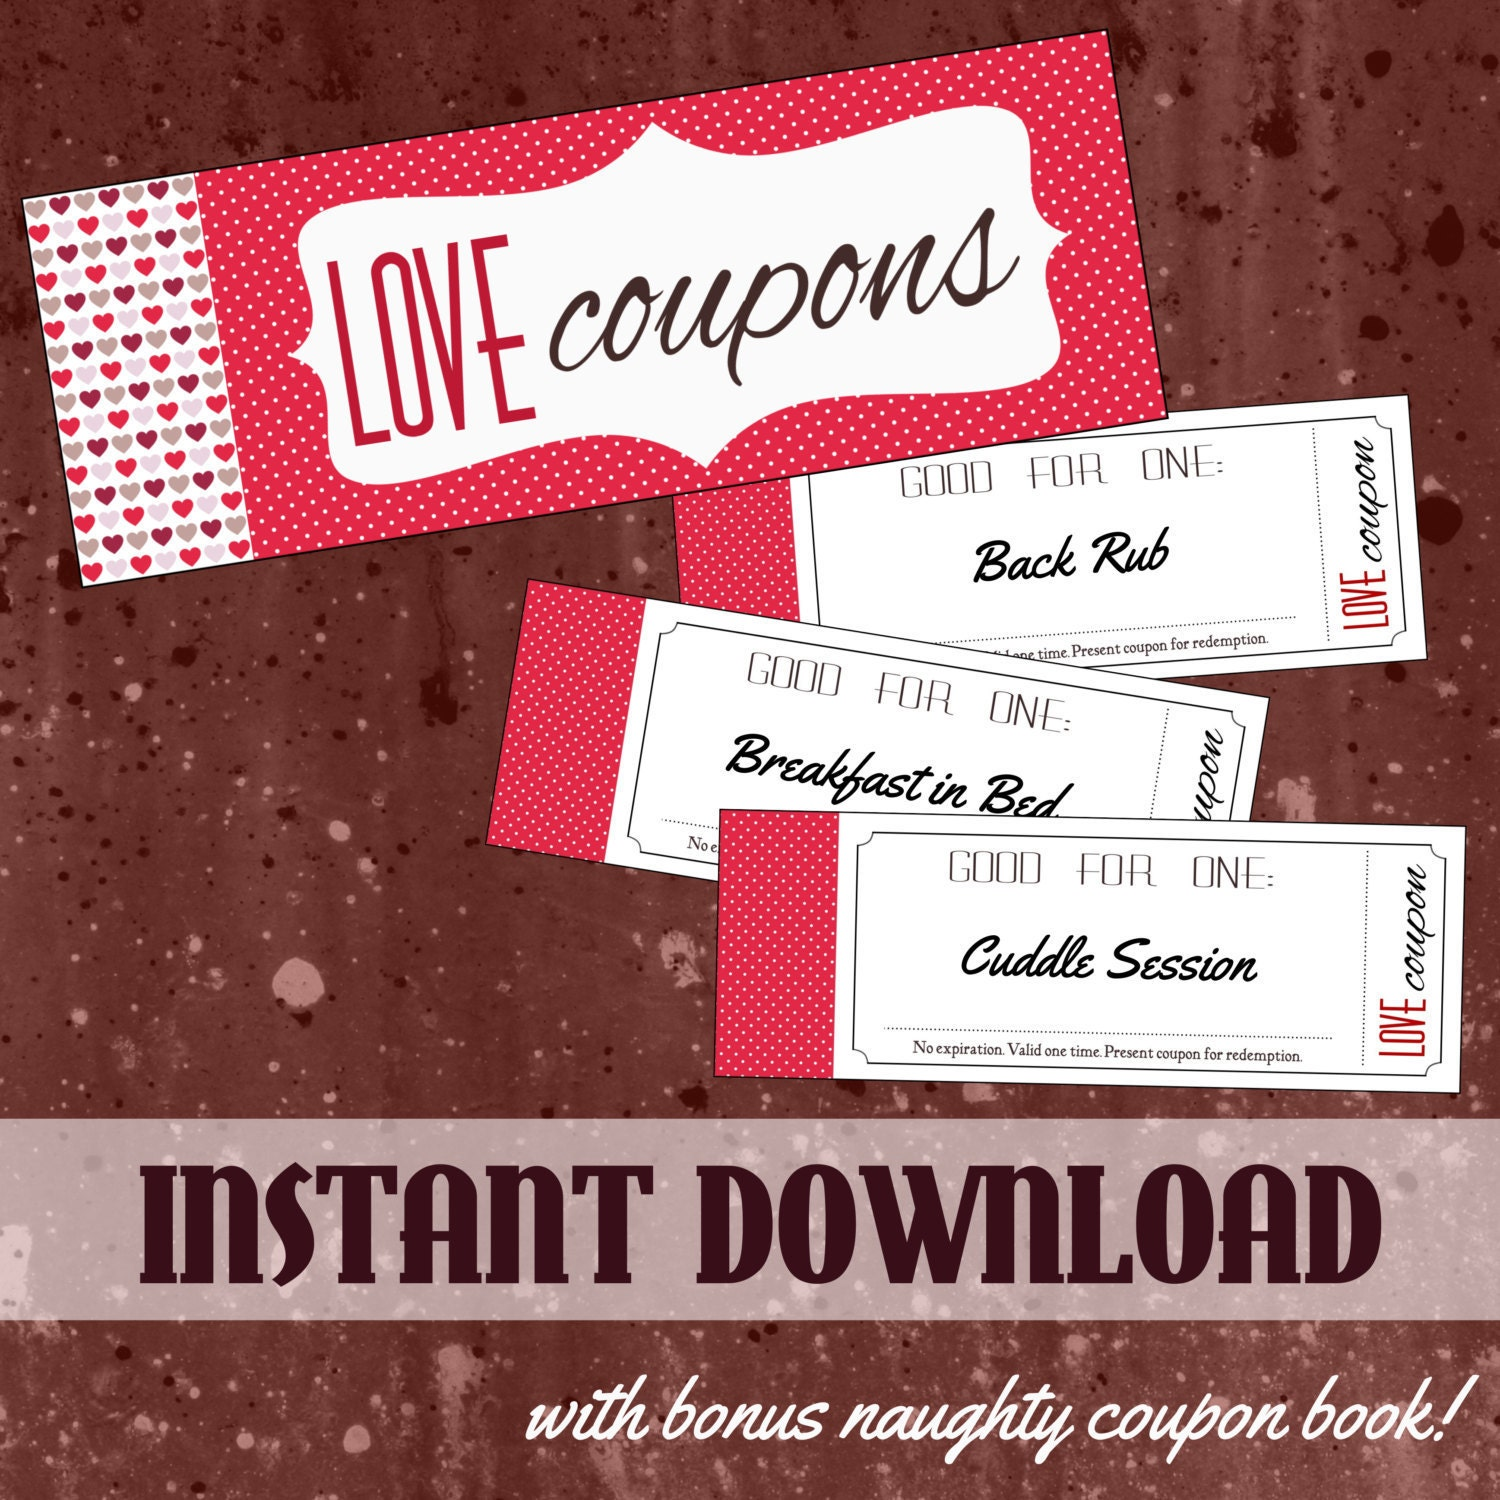 Couples coupon book love and a little bit naughty coupon for Love coupons for him template